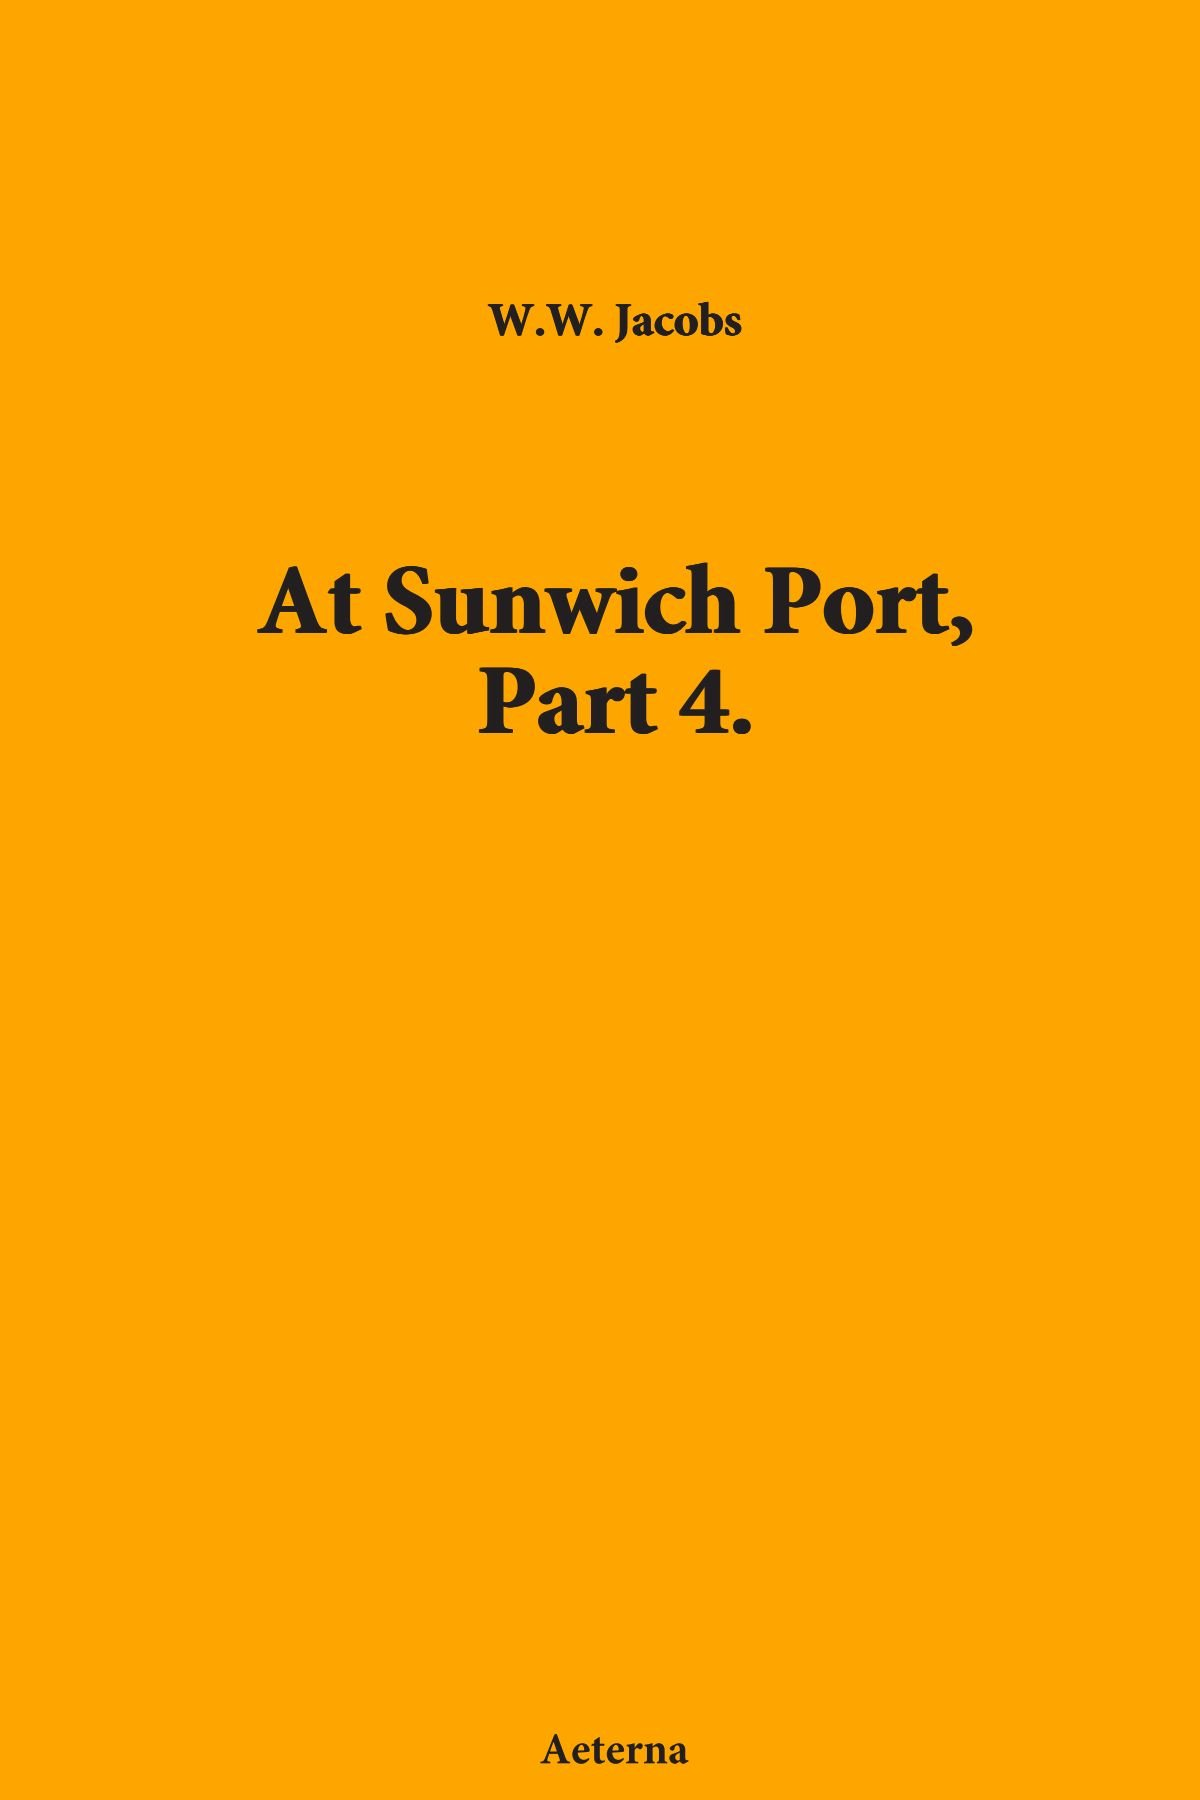 At Sunwich Port, Part 4. ebook